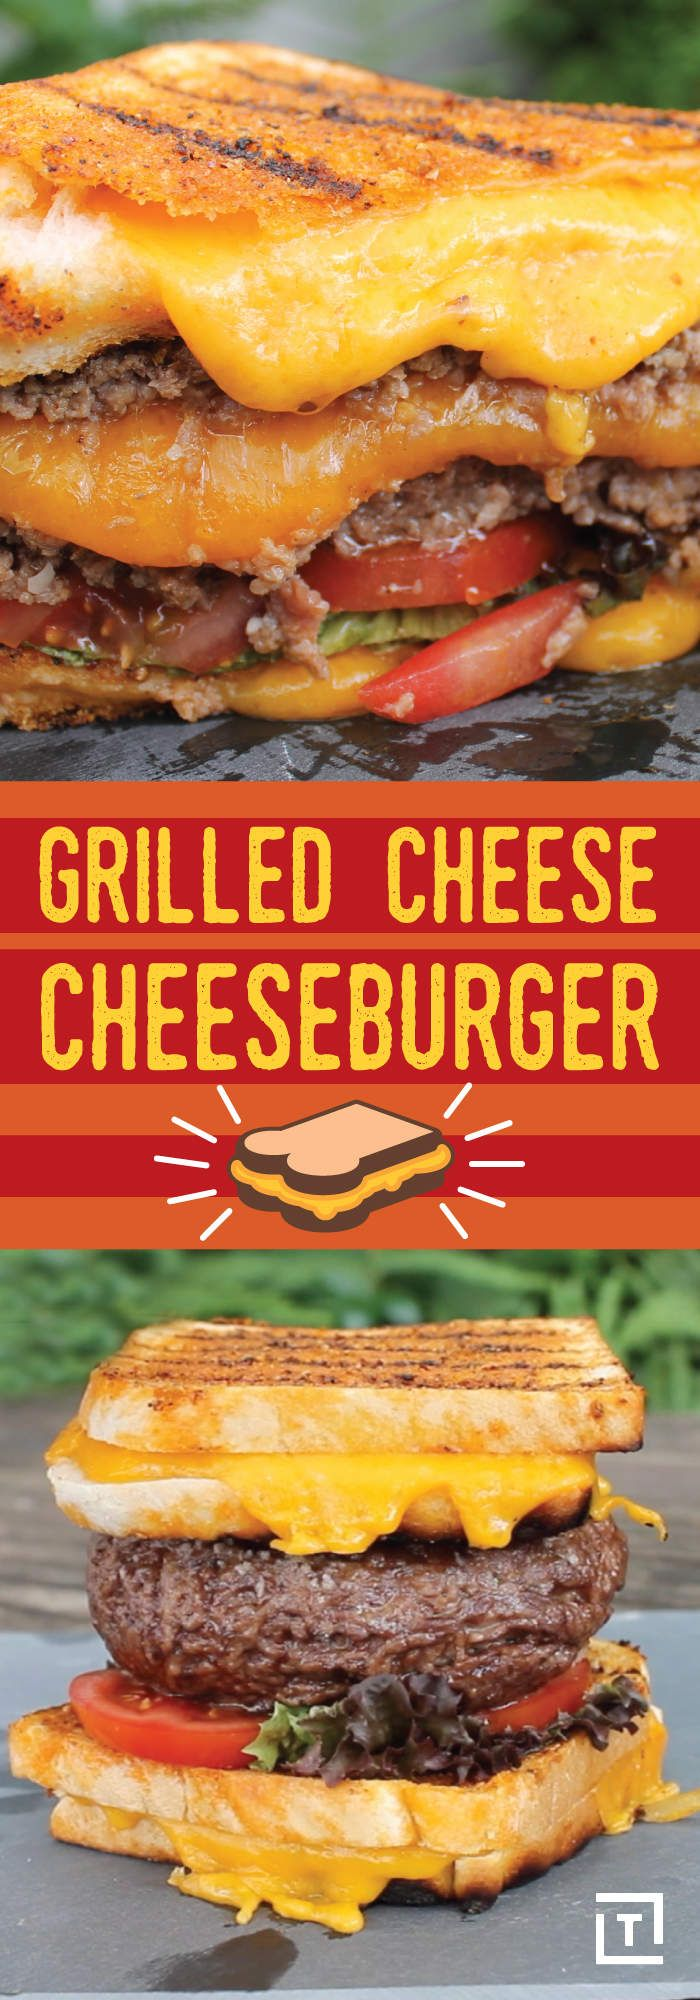 ideas about nikolaus grill we cant stop cheesin for these grilled cheese cheeseburgers